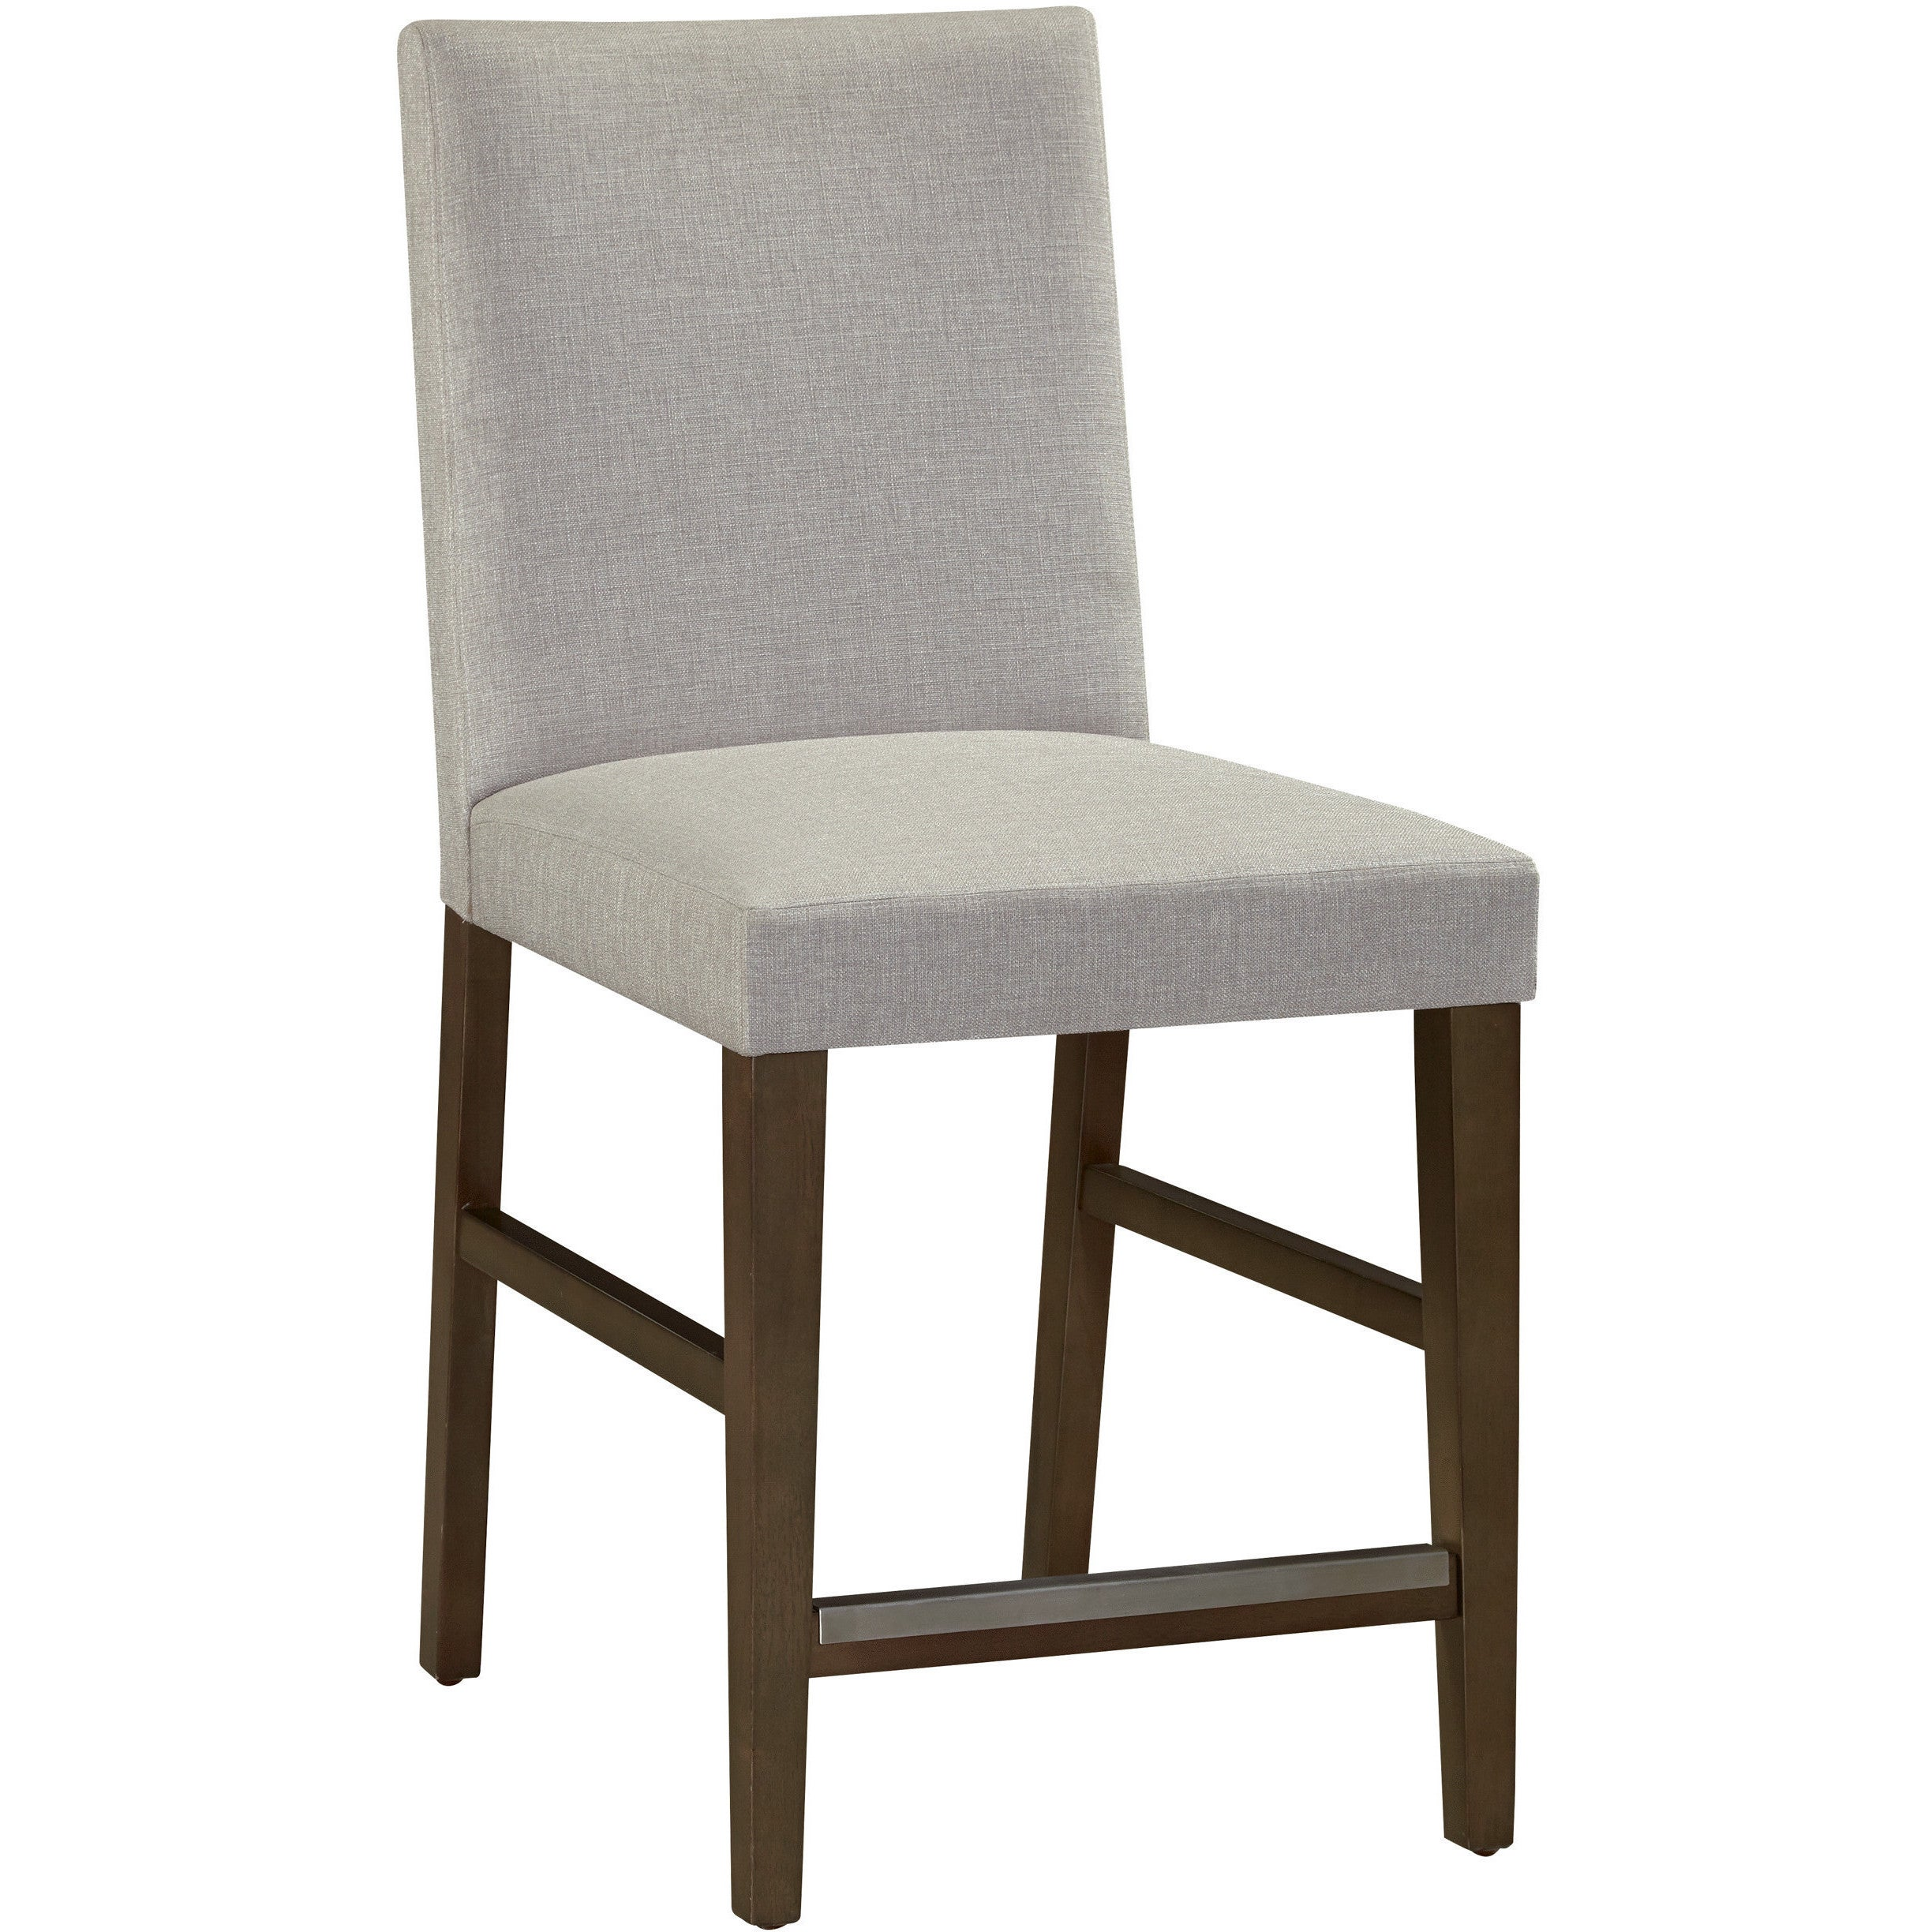 Uniden Hudson Counter-height Cafe Parson Chairs (Set of 2...